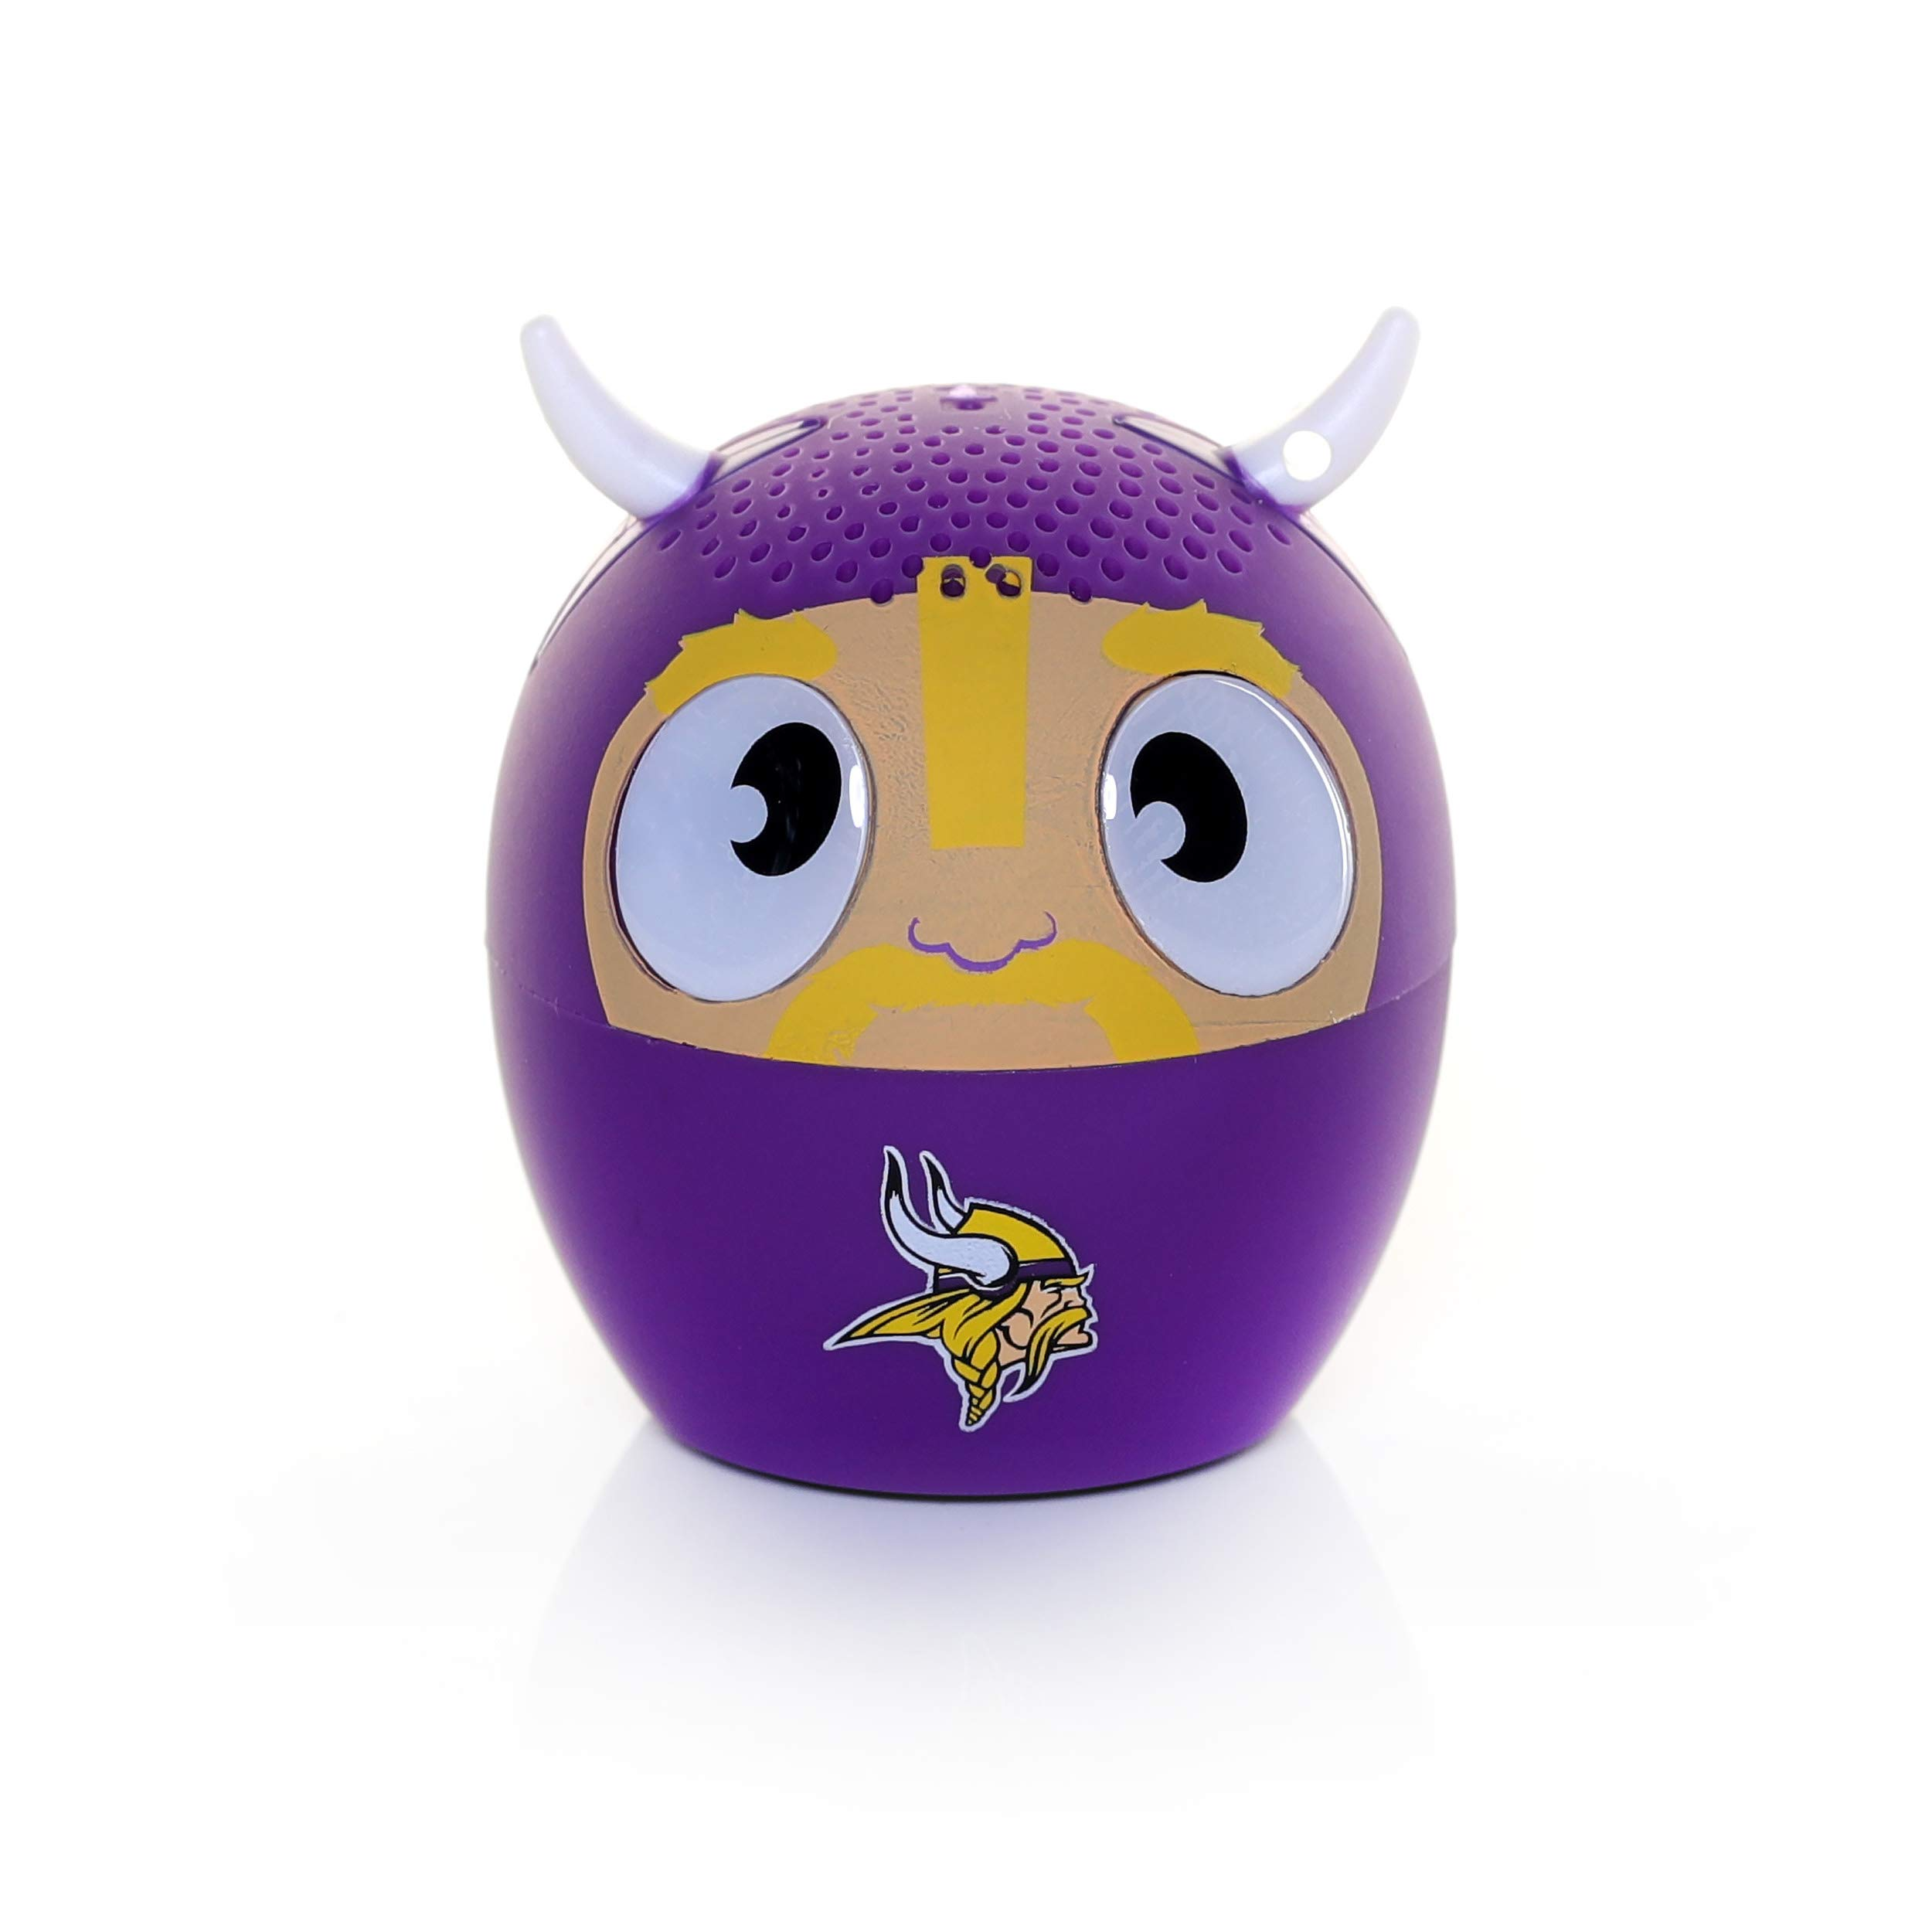 Parlante Bluetooth NFL Minnesota Vikings Bitty Boomer wirele